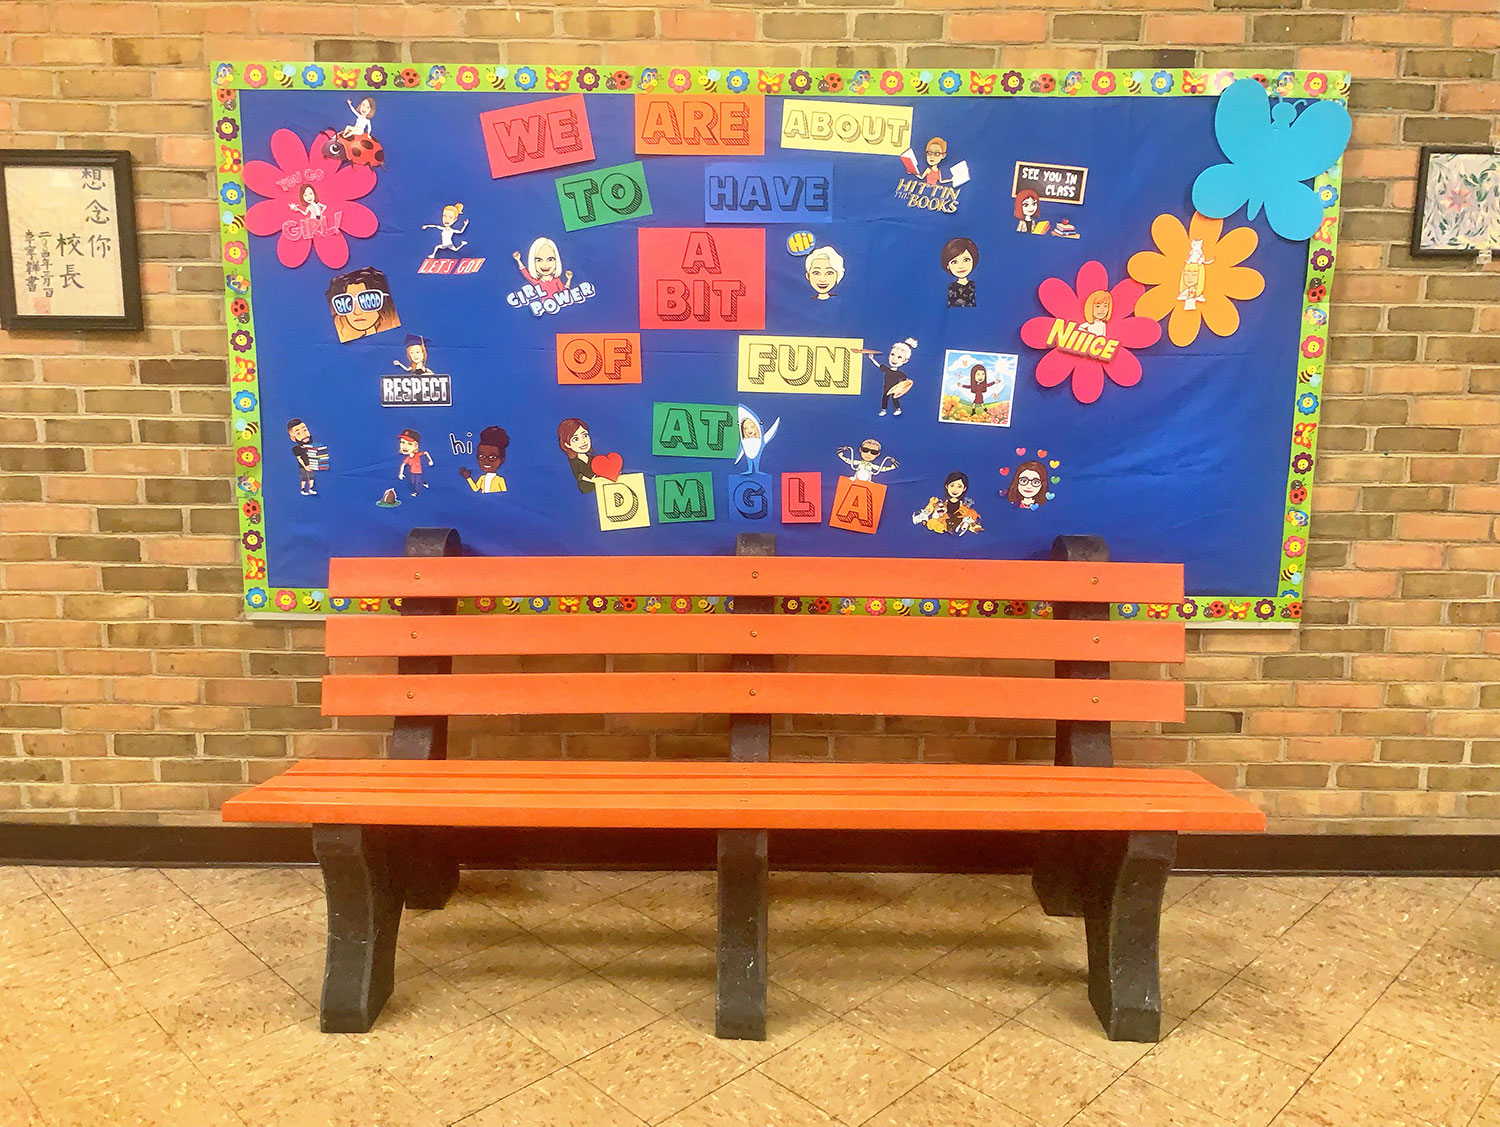 One of our buddy benches